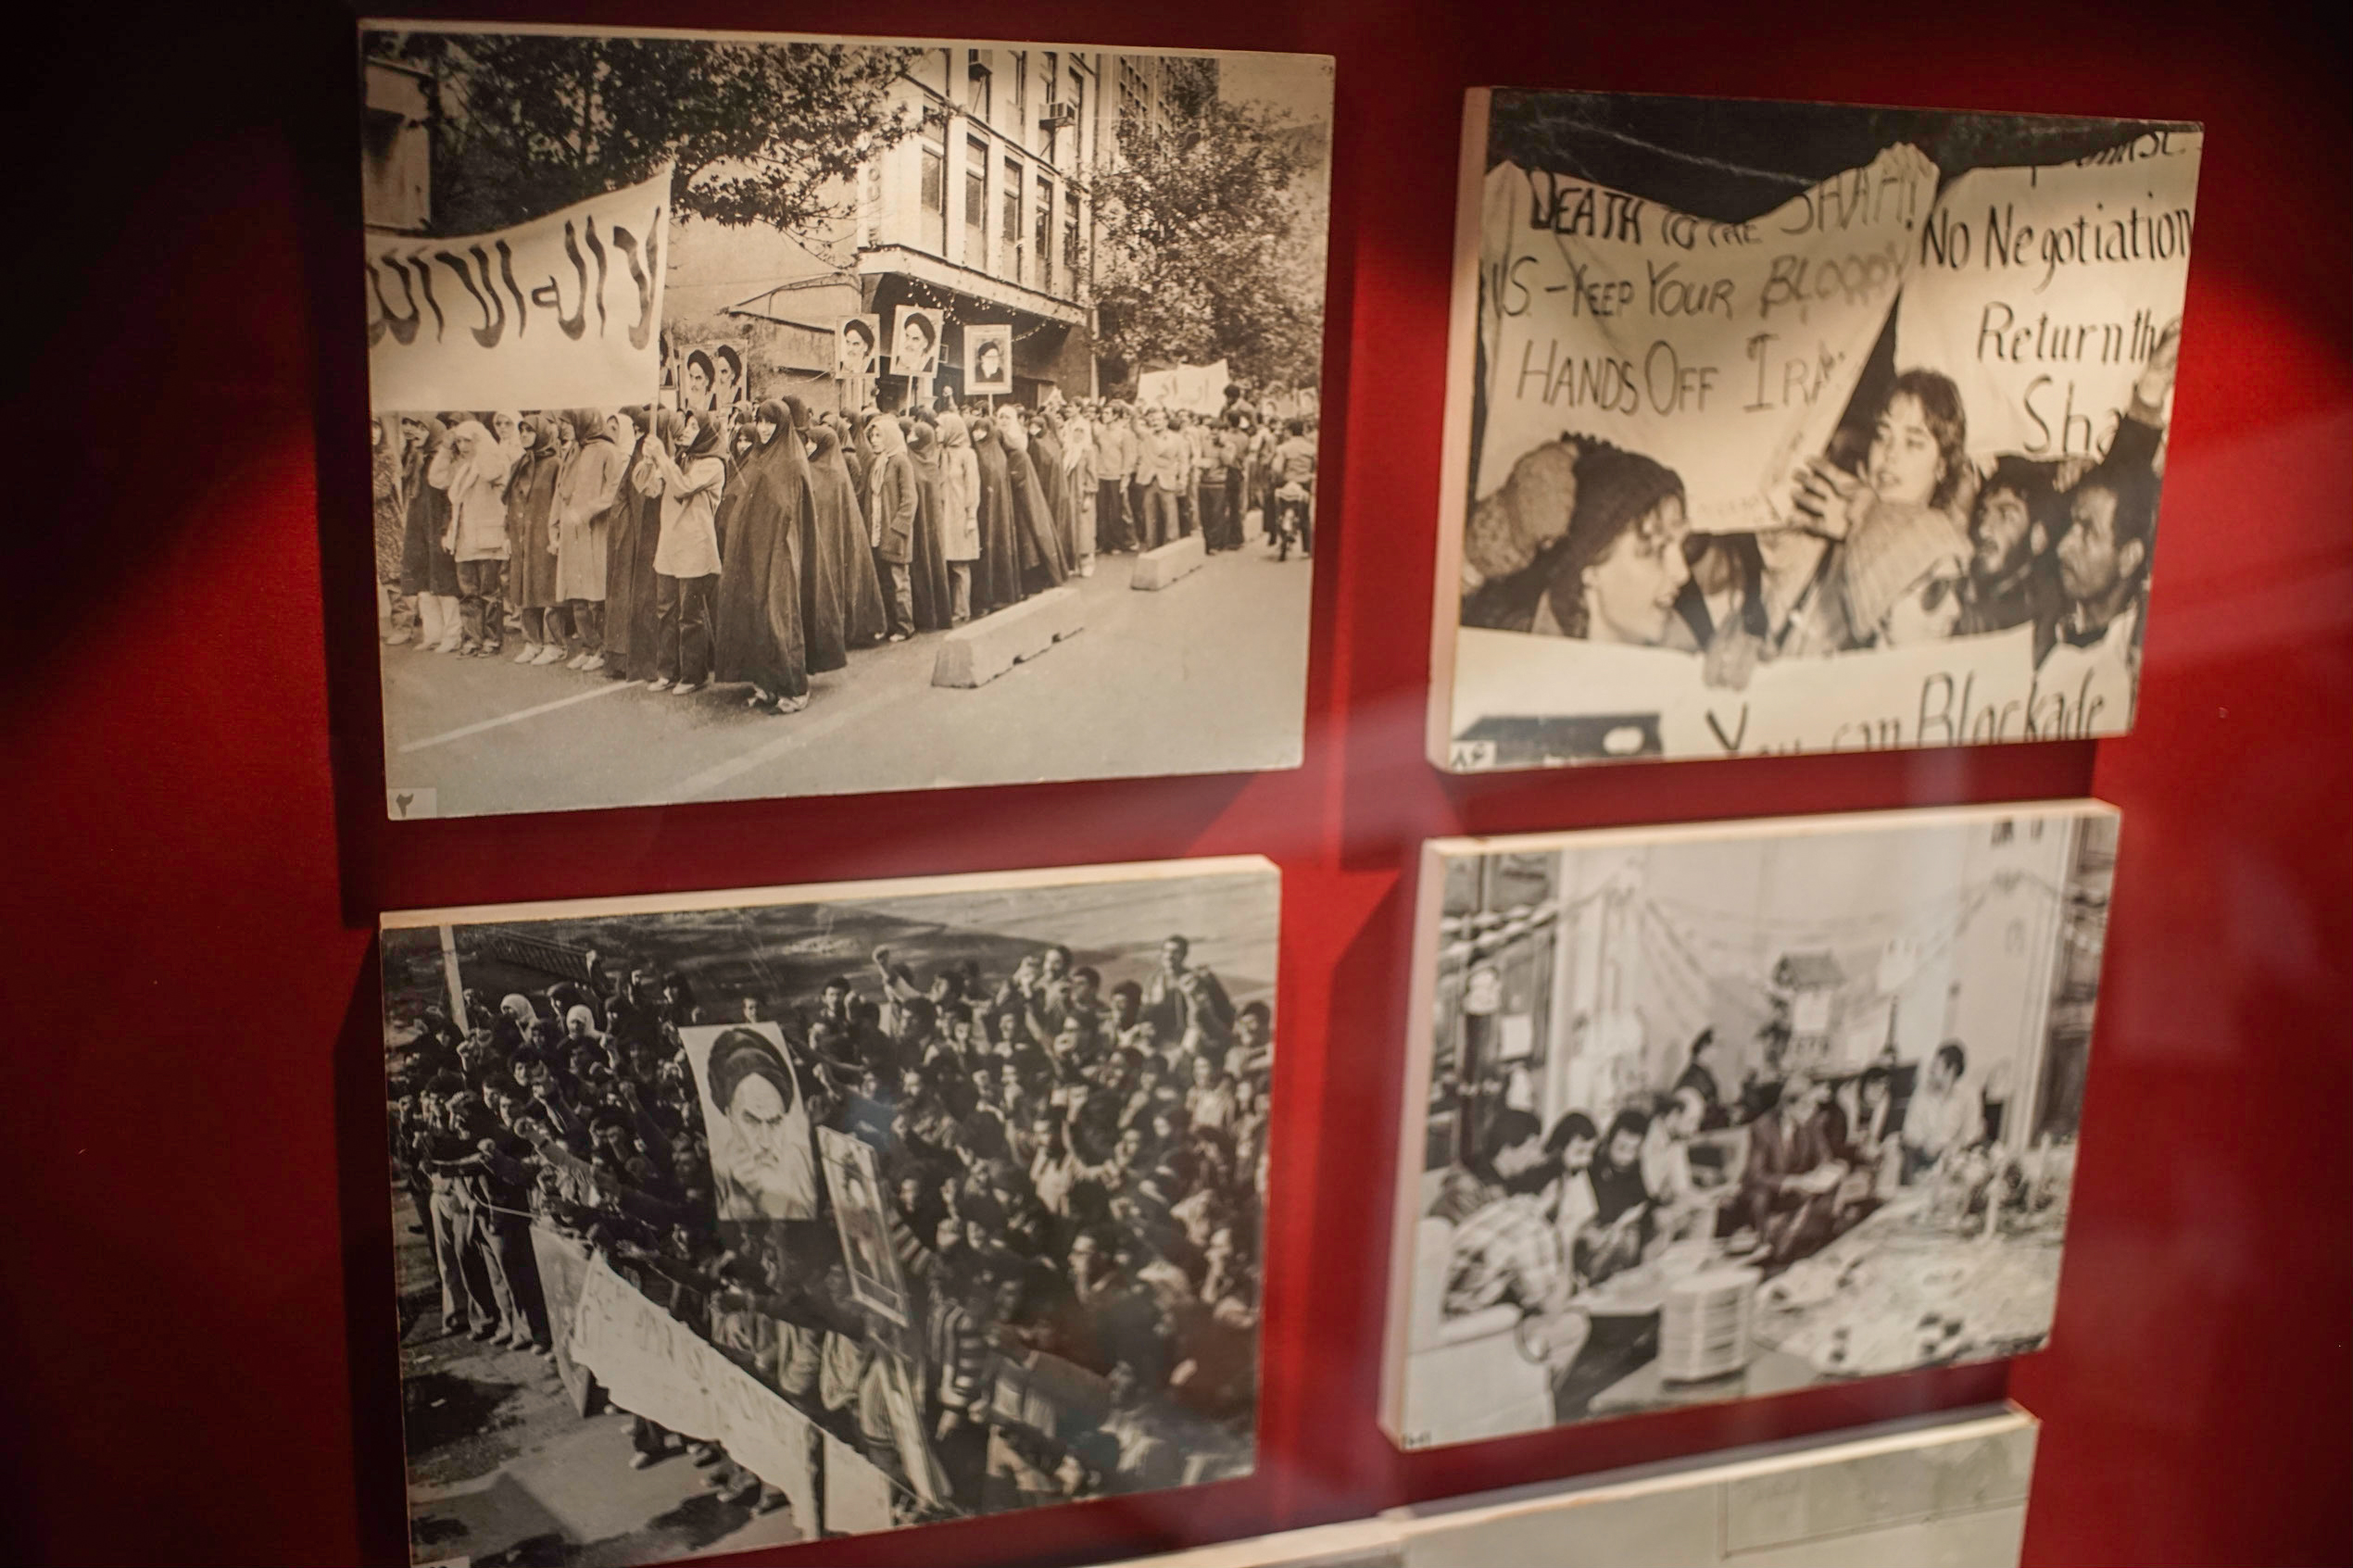 Interspersed throughout the museum are photos like these of Iranian Revolution rallies that took place before and during the hostage crisis.